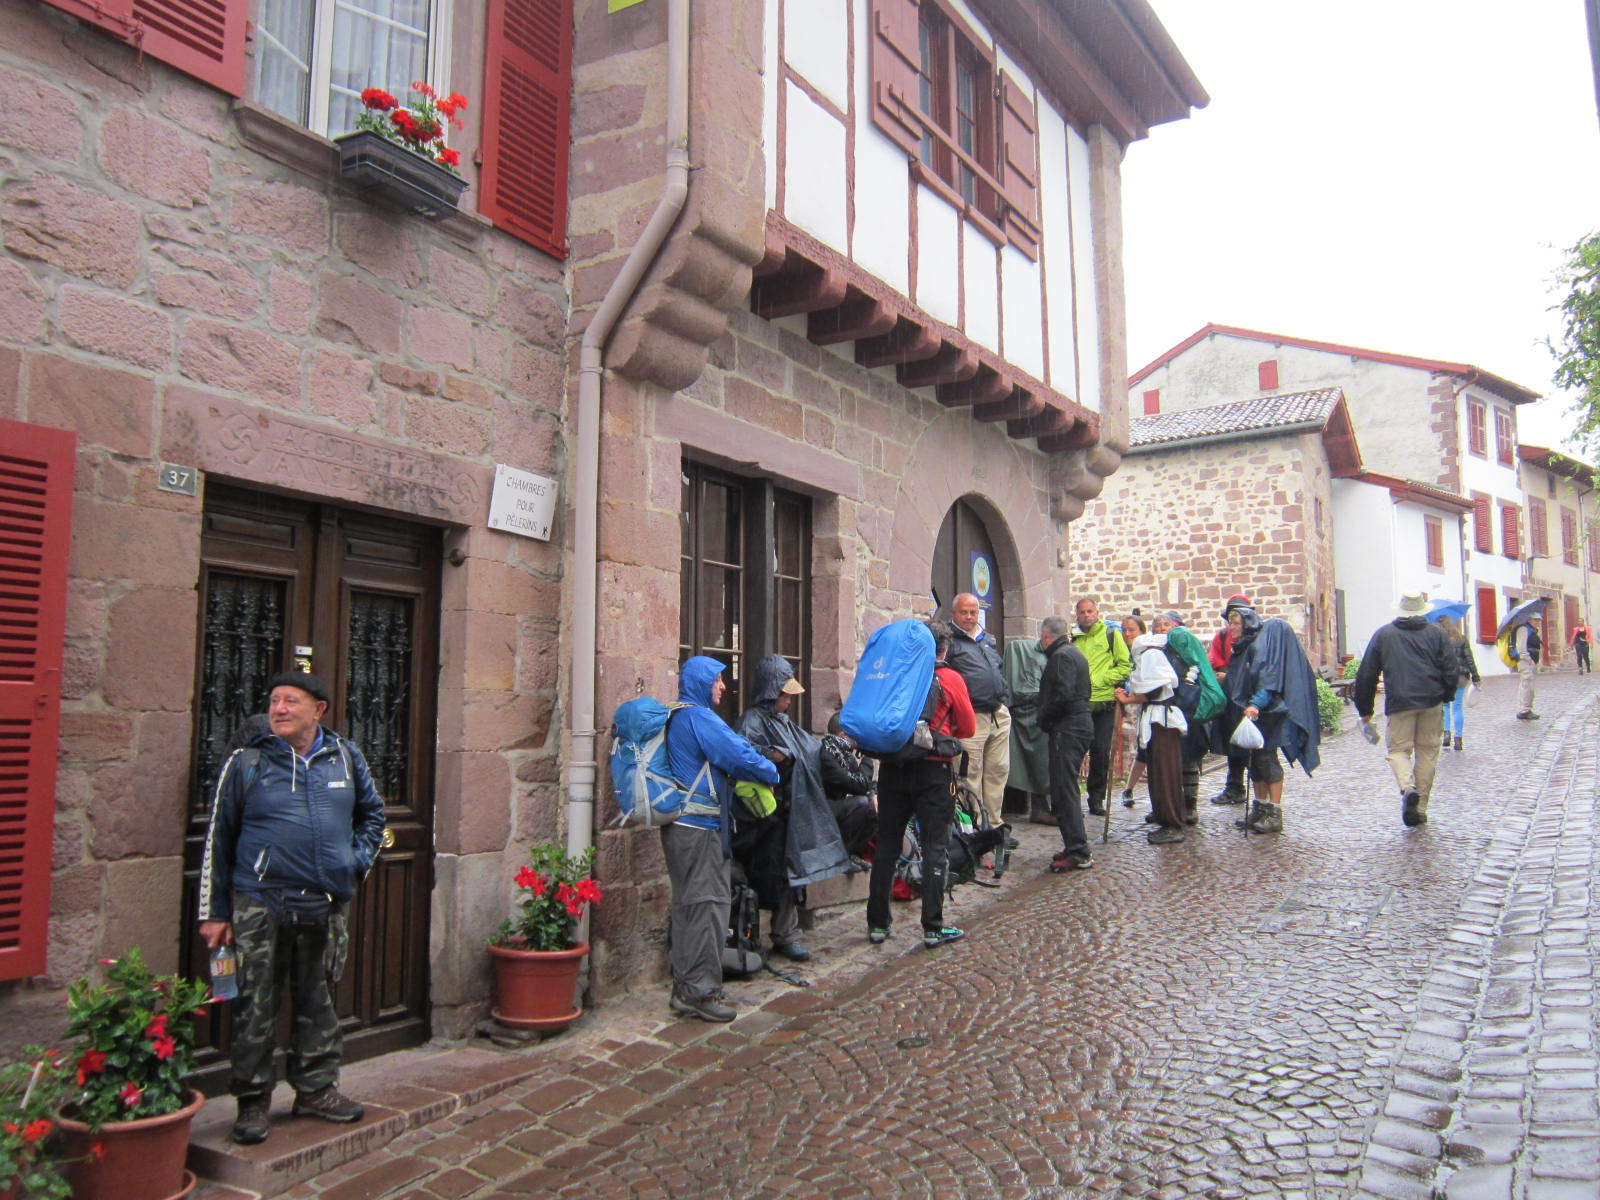 St jean pied de port essential arrival and departure - How to get to saint jean pied de port ...